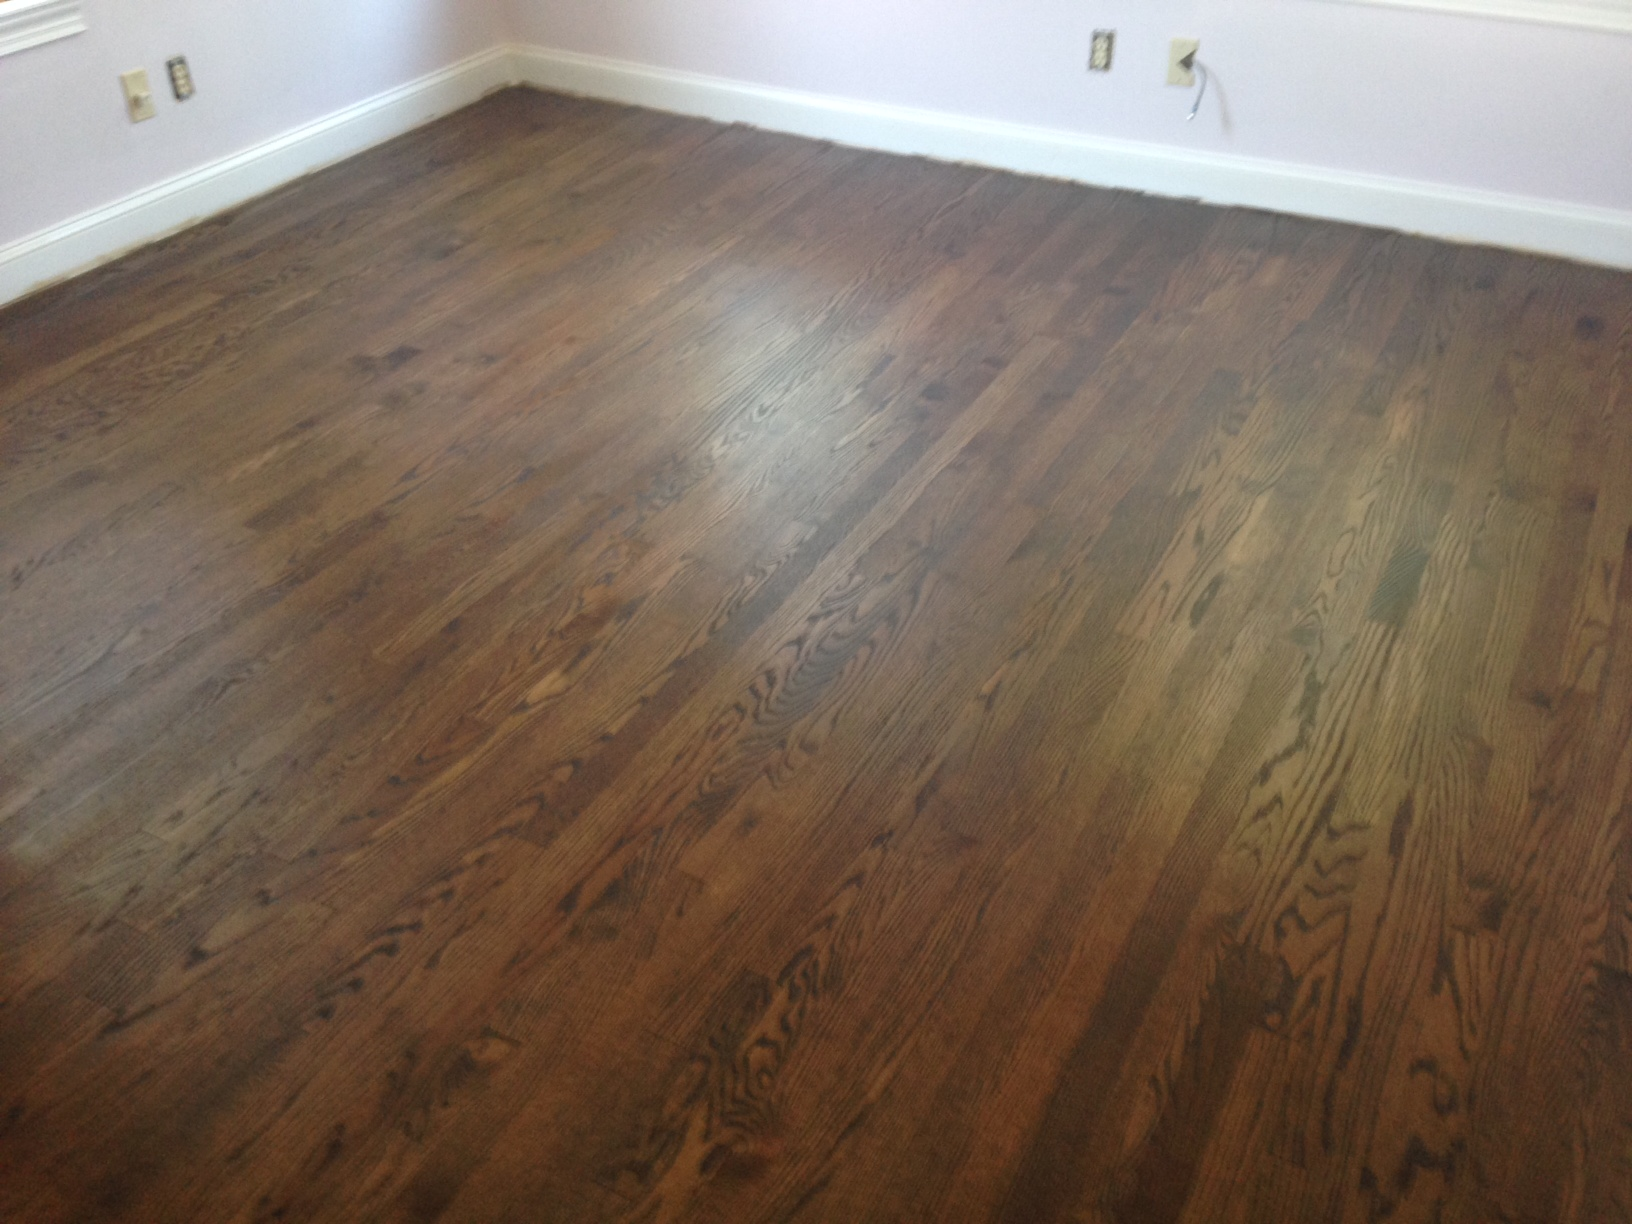 New hardwood floors wood floor refinishing epping forest for Staining hardwood floors